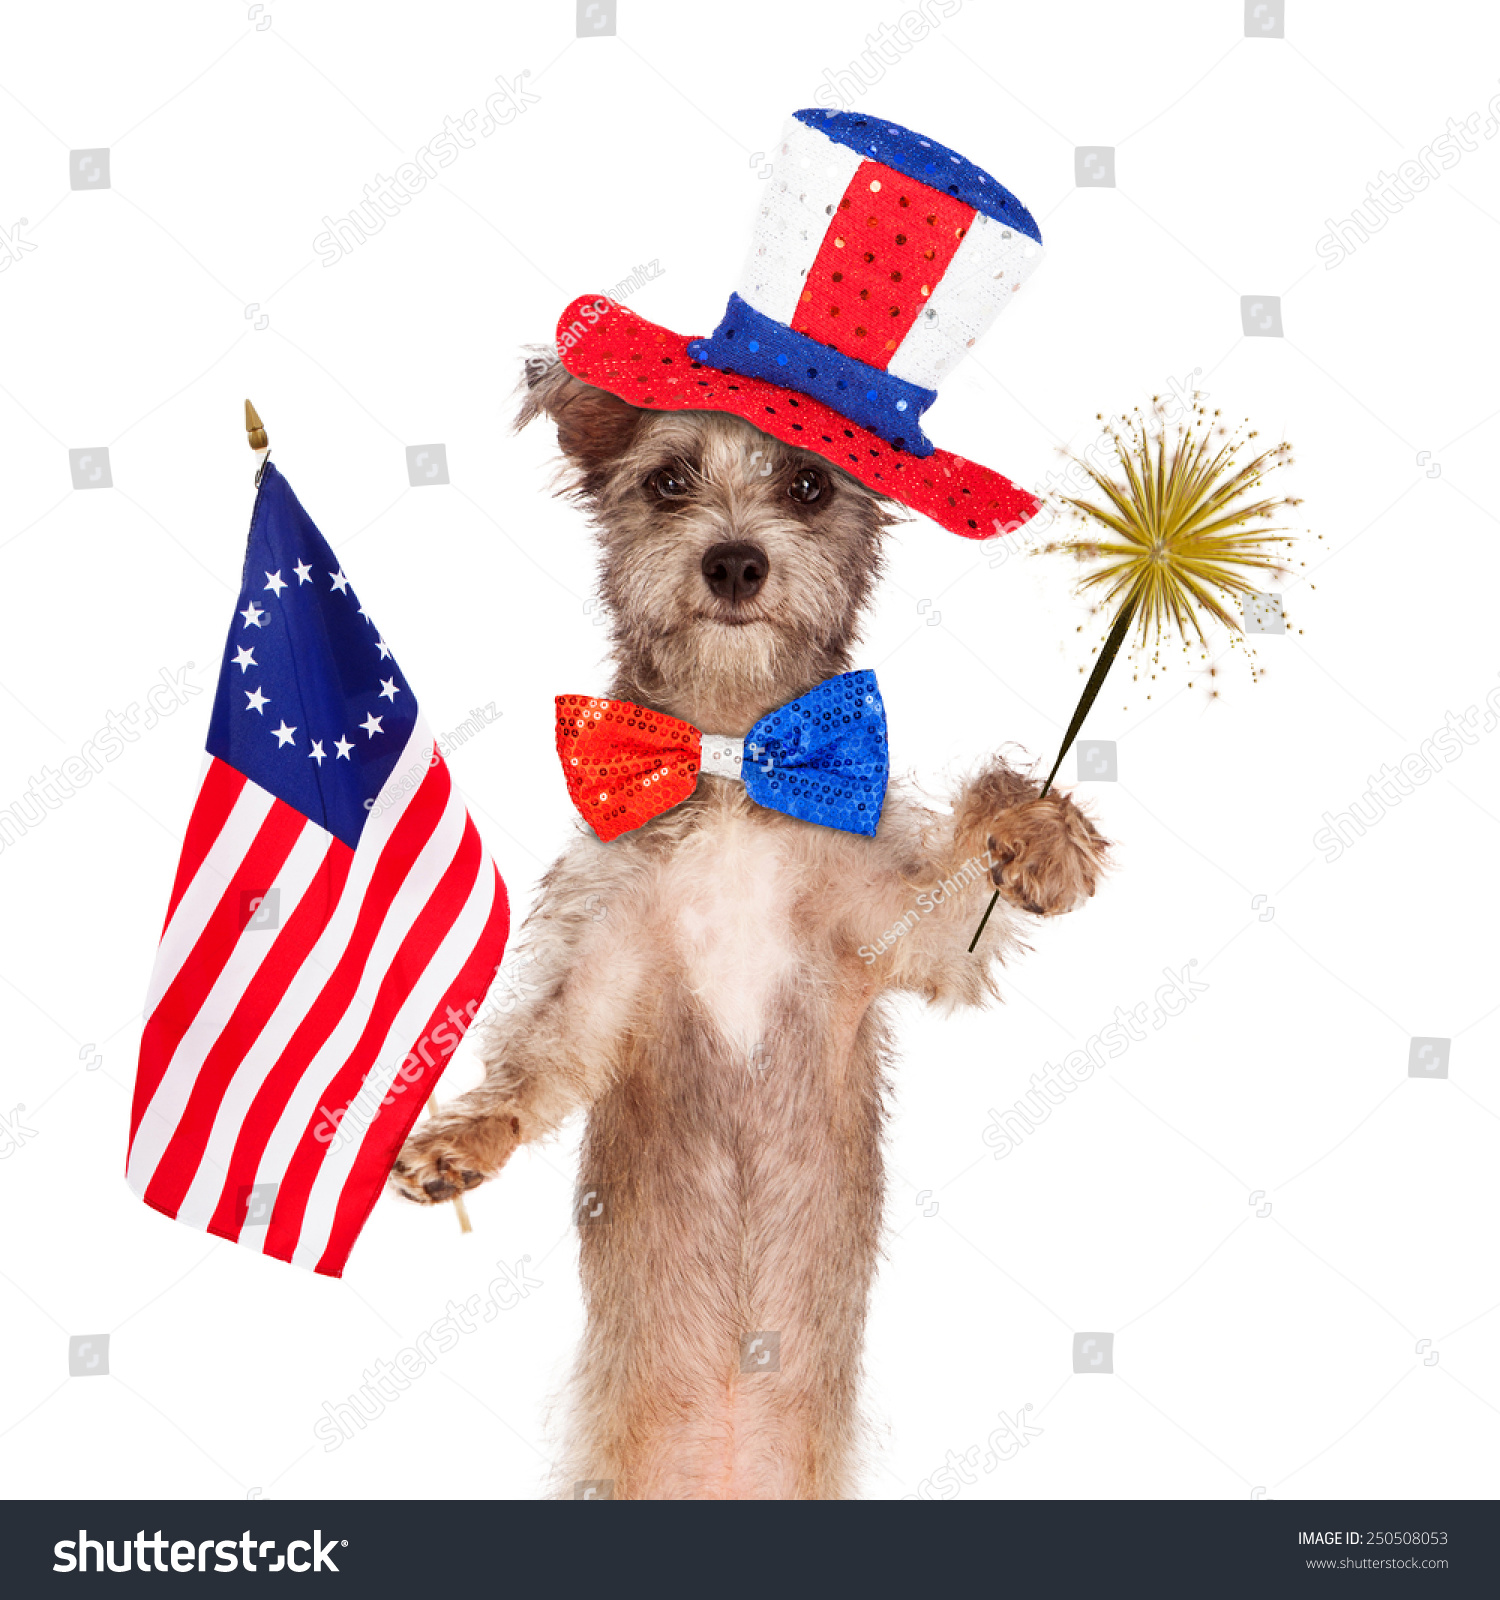 What Breed Is The Dog Independence Day